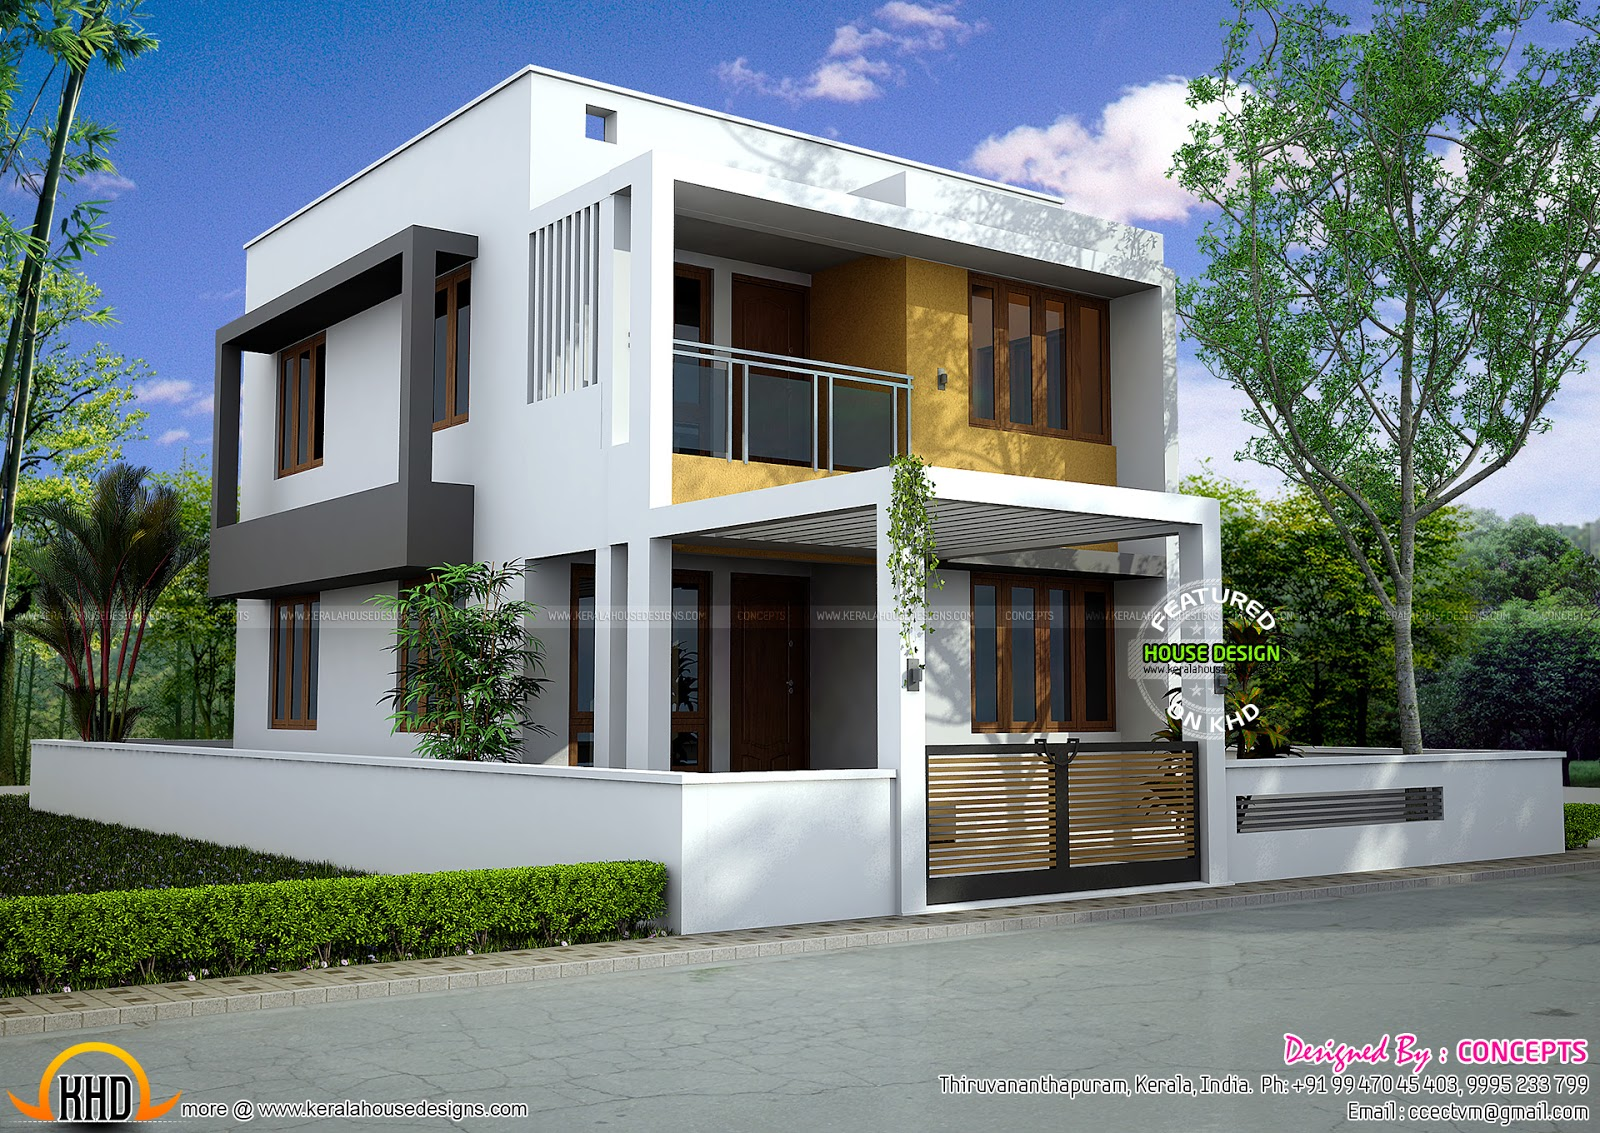 Charming 3-BED ROOM CONTEMPORARY HOME Part - 2: Three Bedroom Multi-Storey Modern Style Home